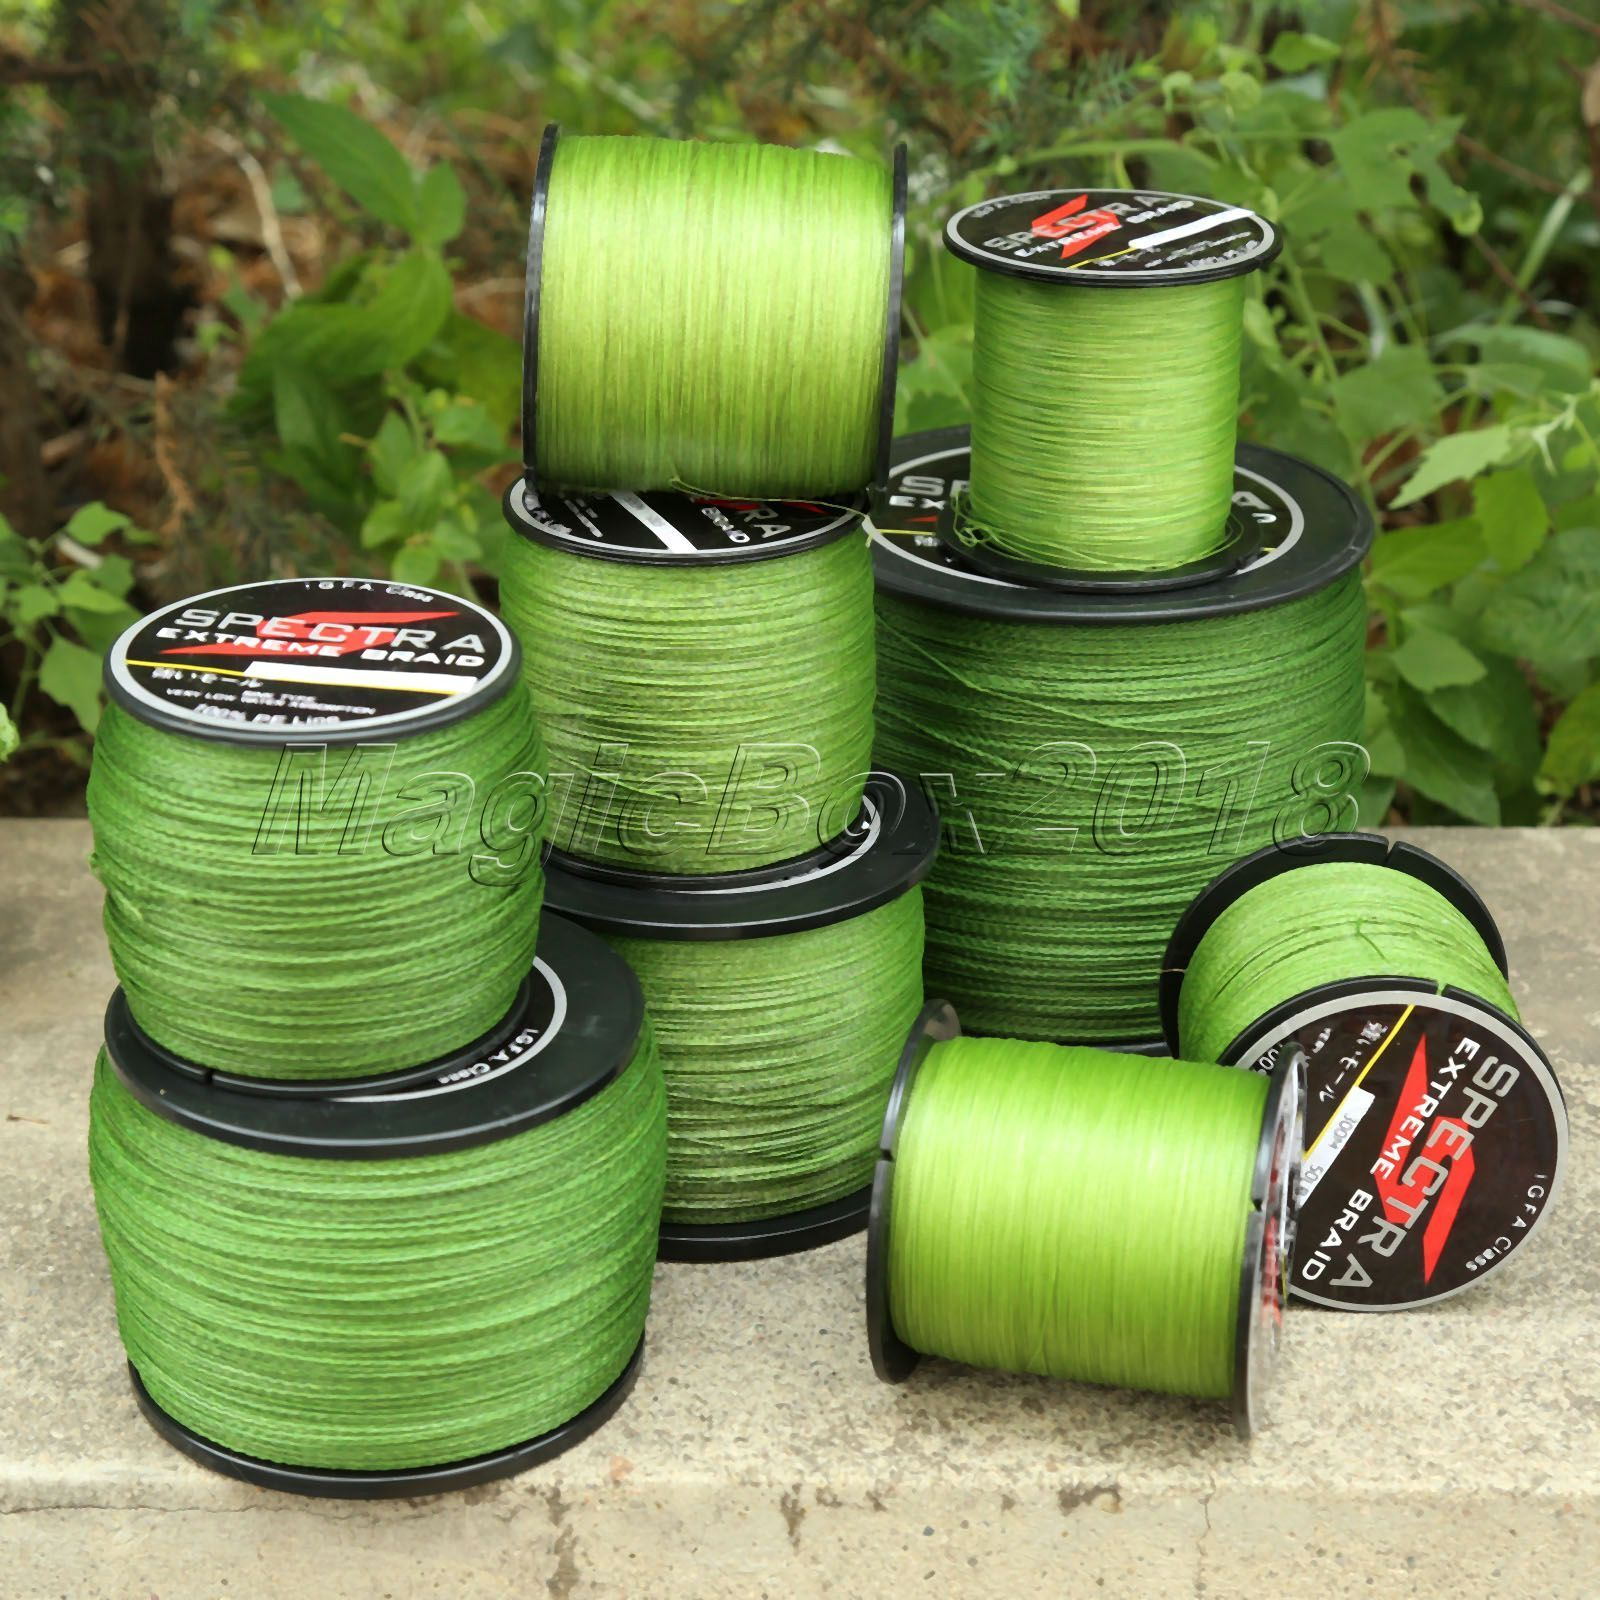 Army Green 300-1000M Strong Spectra Braided Line Sea Freshwater Fishing Line